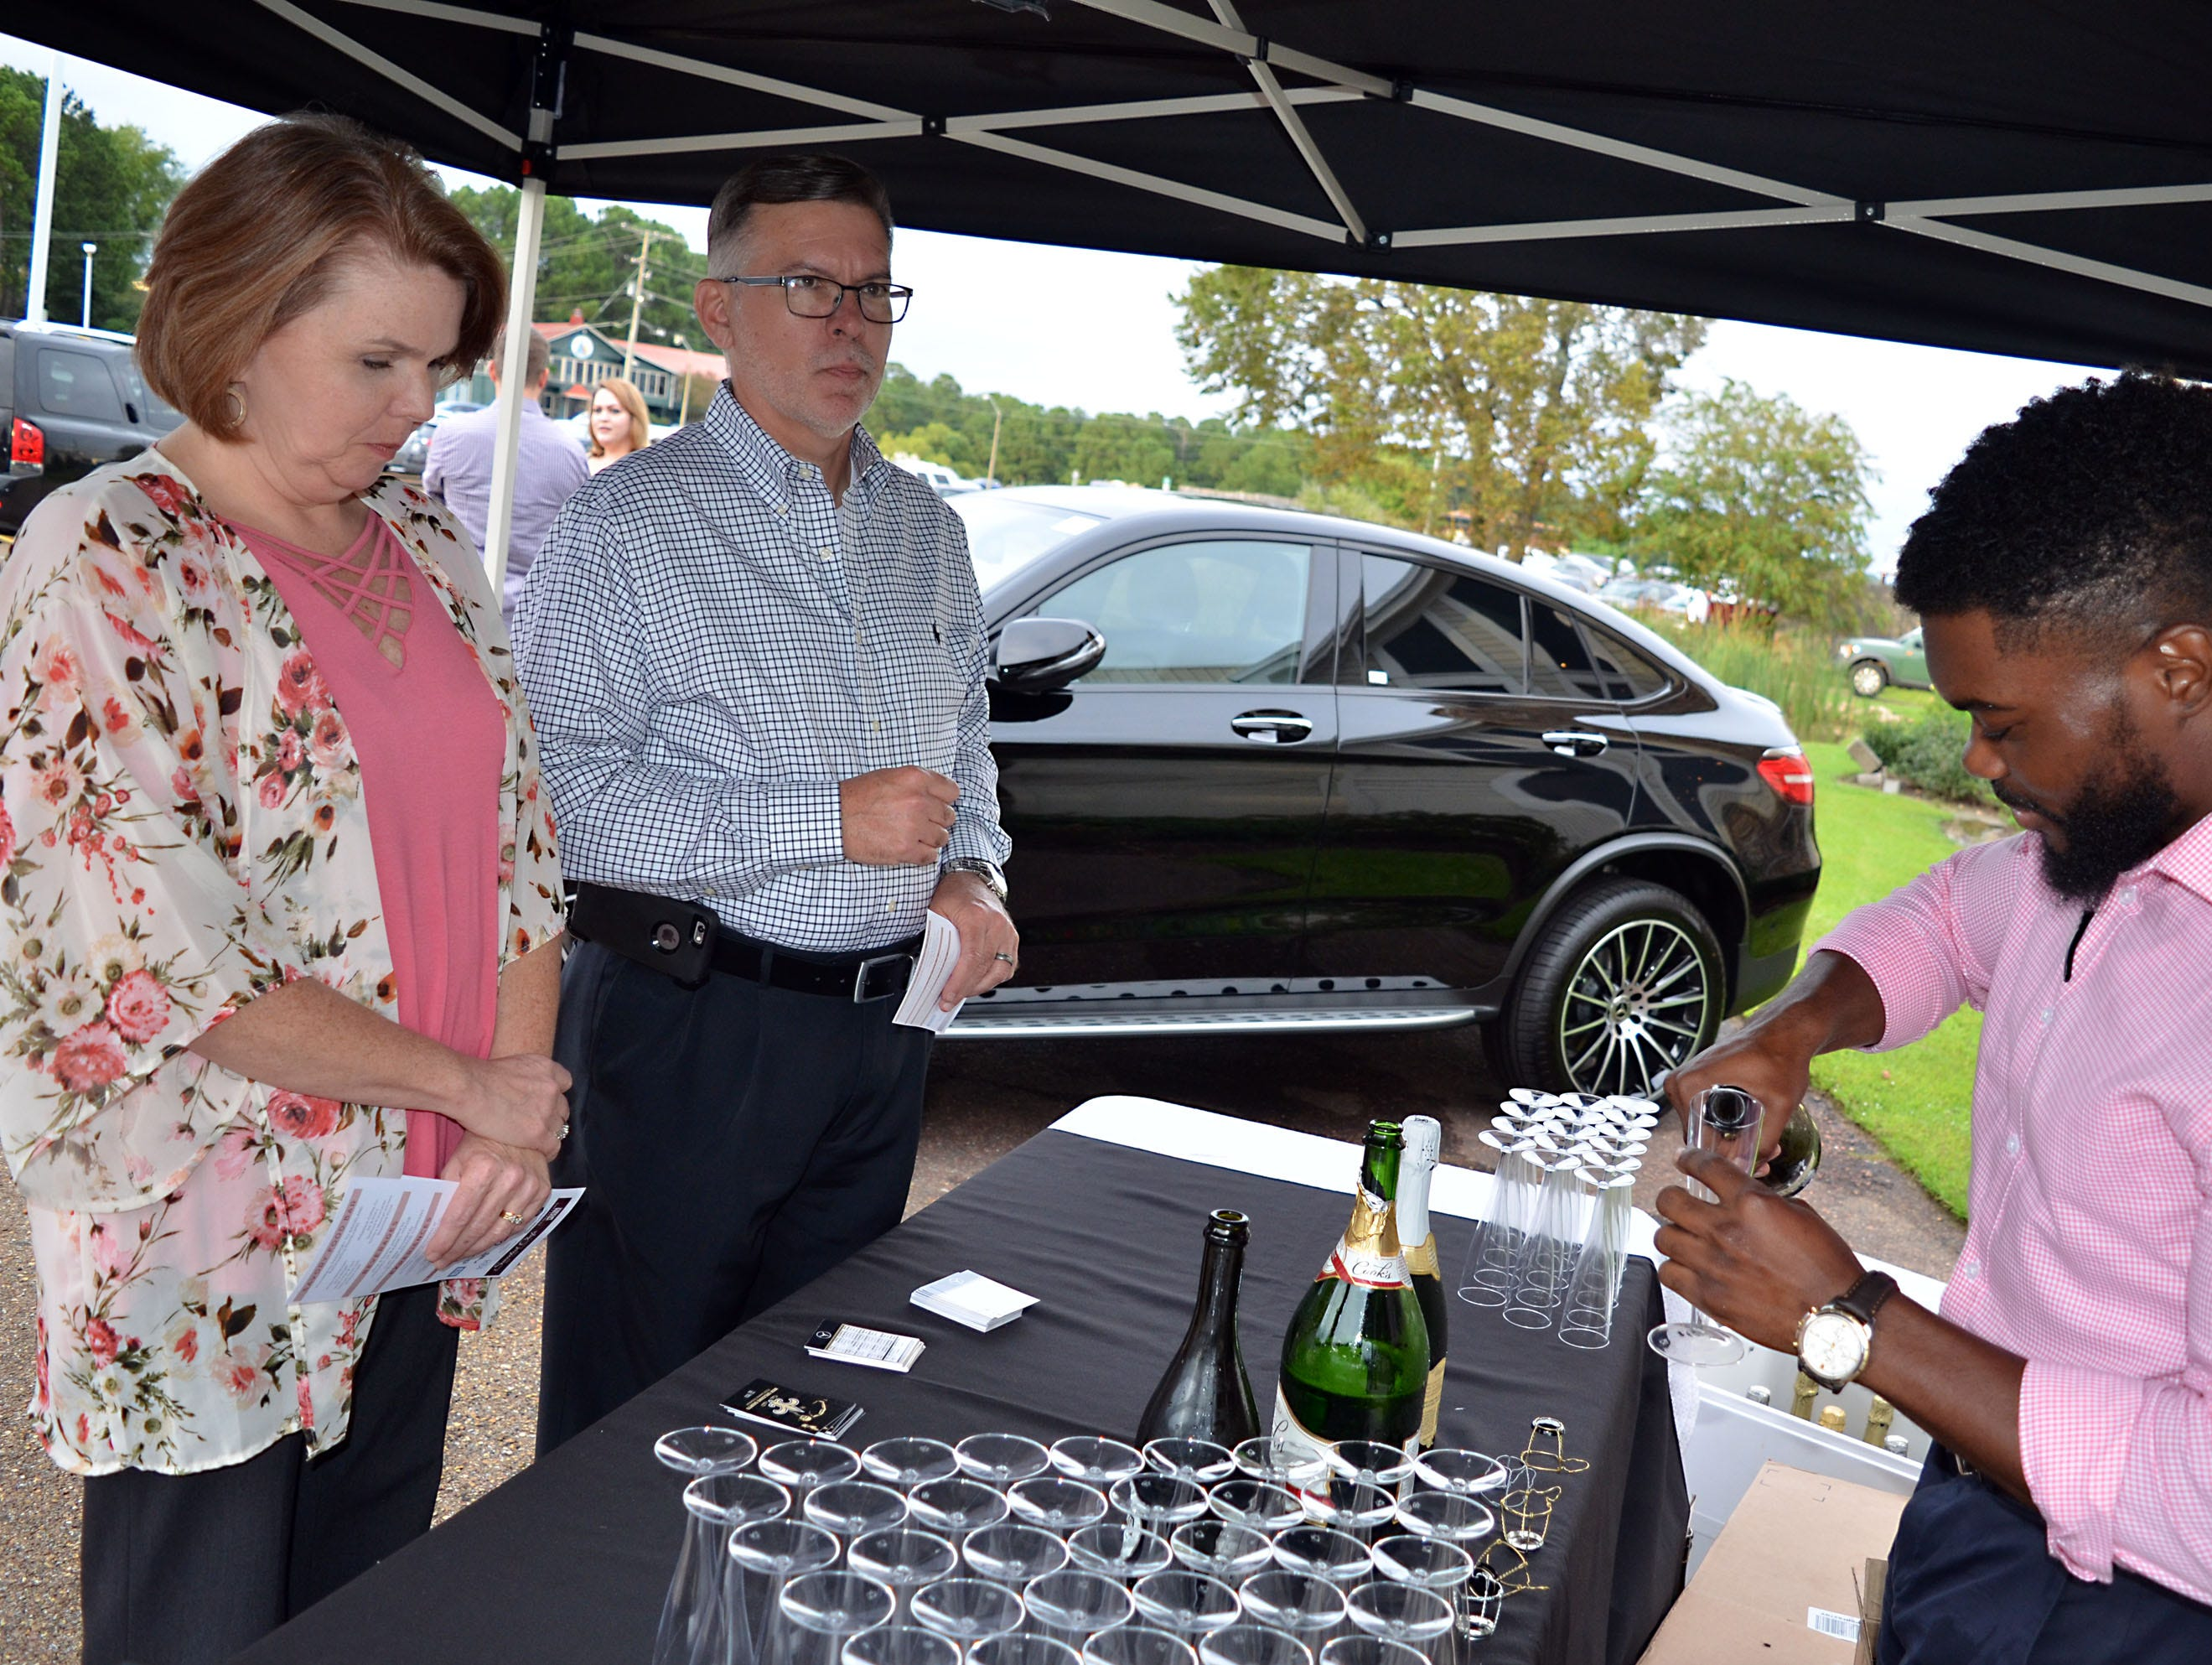 Andre Johnson, right, serves Angie and Vic Prather, of Mendenhall, a glass of champagne as they arrive at The Sweetest Chefs of the South event held Monday at The Lake House in Ridgeland.